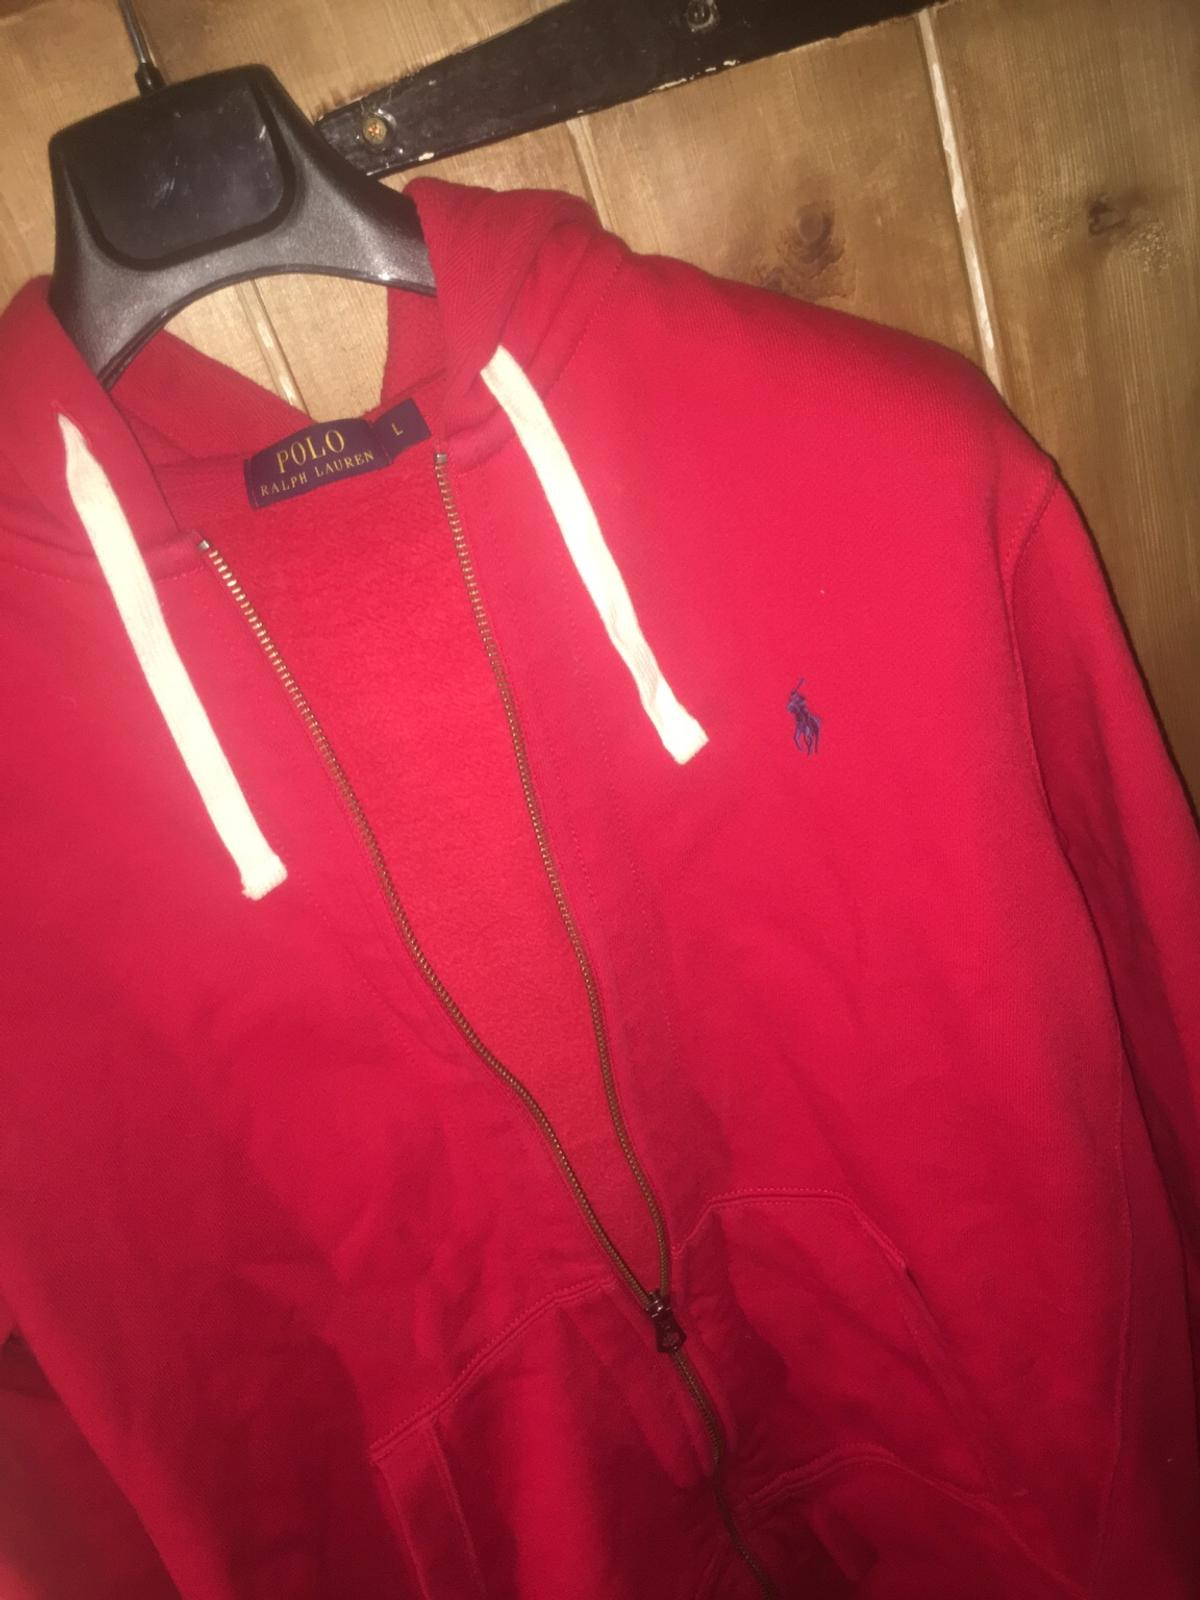 Comfortable, warm, immaculate condition and honestly hardly worn. The POLO hoodie will compliment many personal looks and is in my opinion a chill and comfort hoodie. How can you not resist? I clearly couldn't Bought for 65 still withholding immaculate condition.